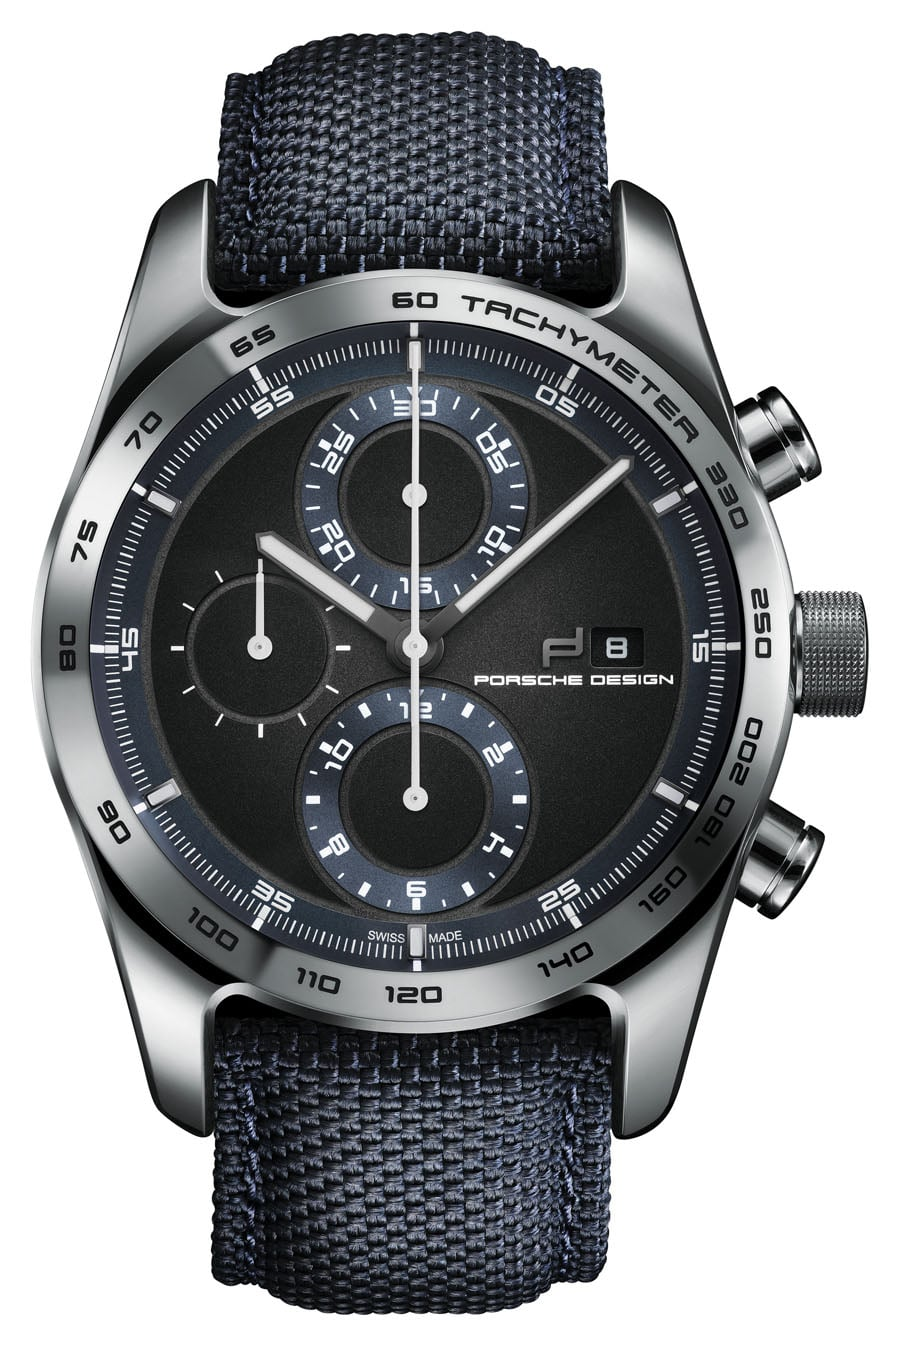 Porsche Design: Chronotimer Series 1 Deep Blue